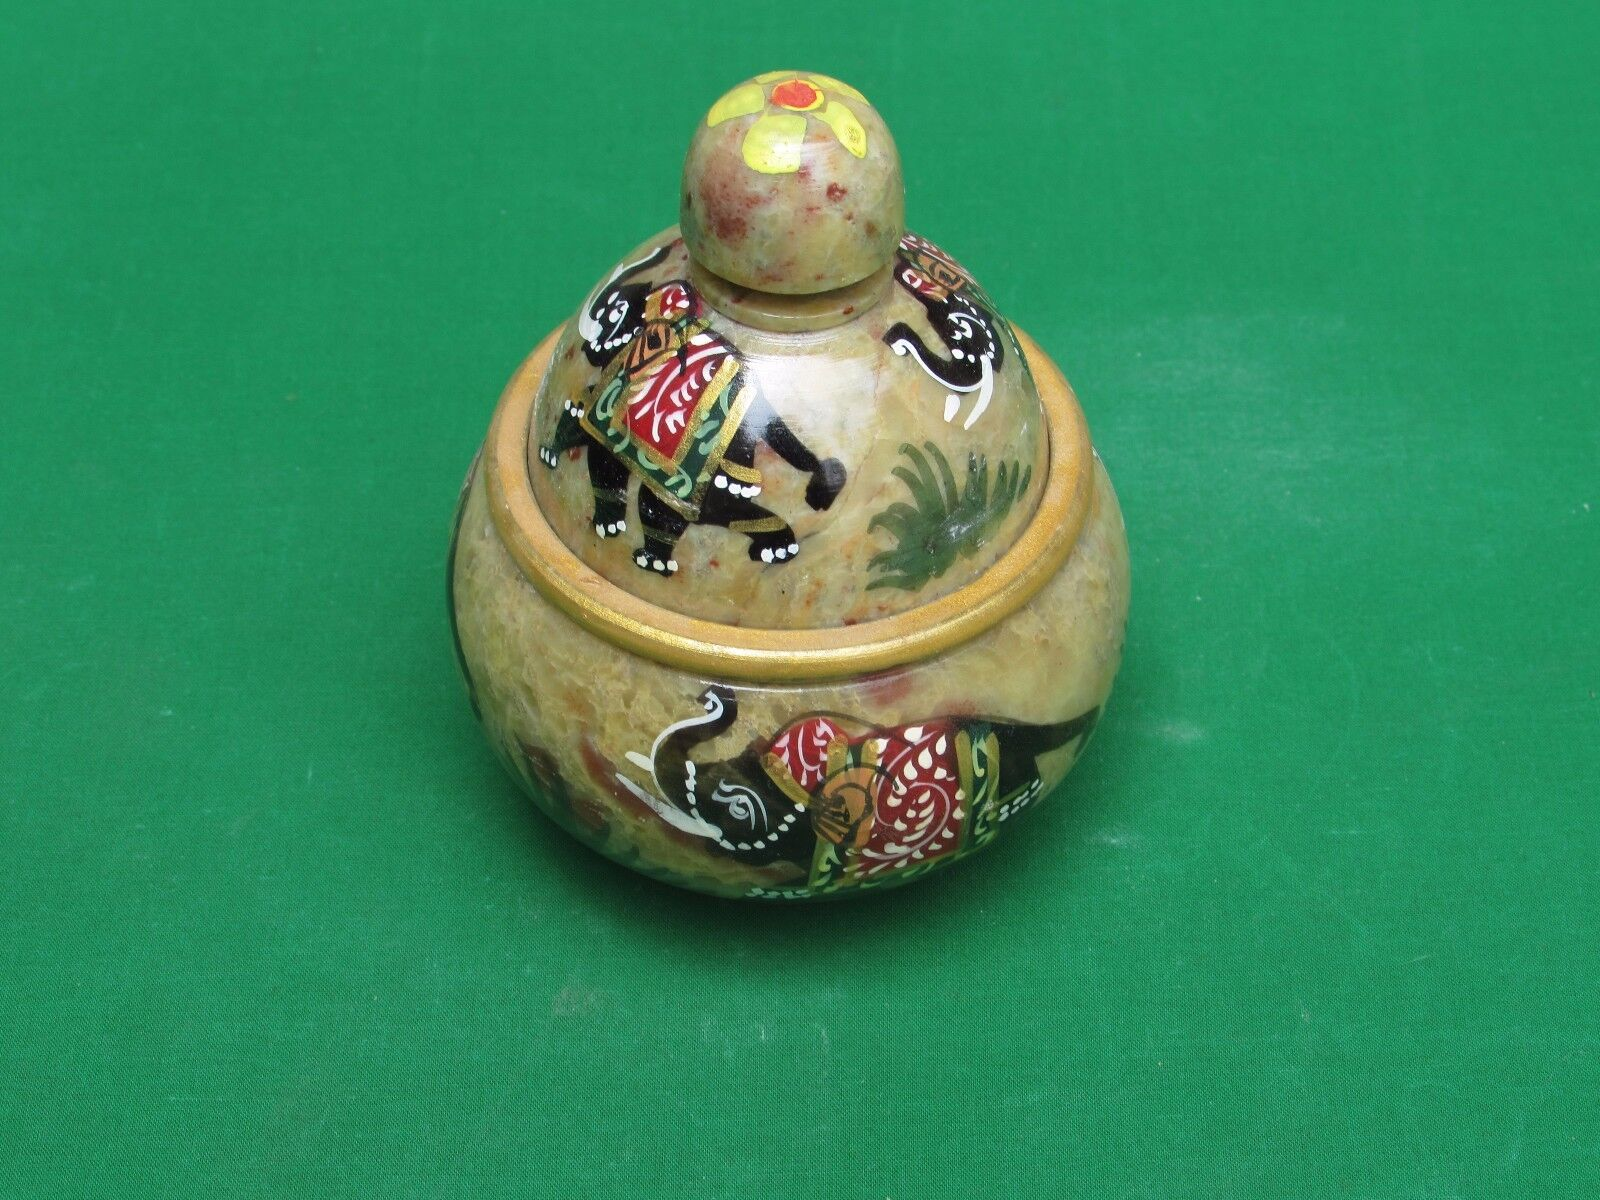 Marble Jewelry Box Stone Art Craft Handpainted Handmade for home decor and gifts